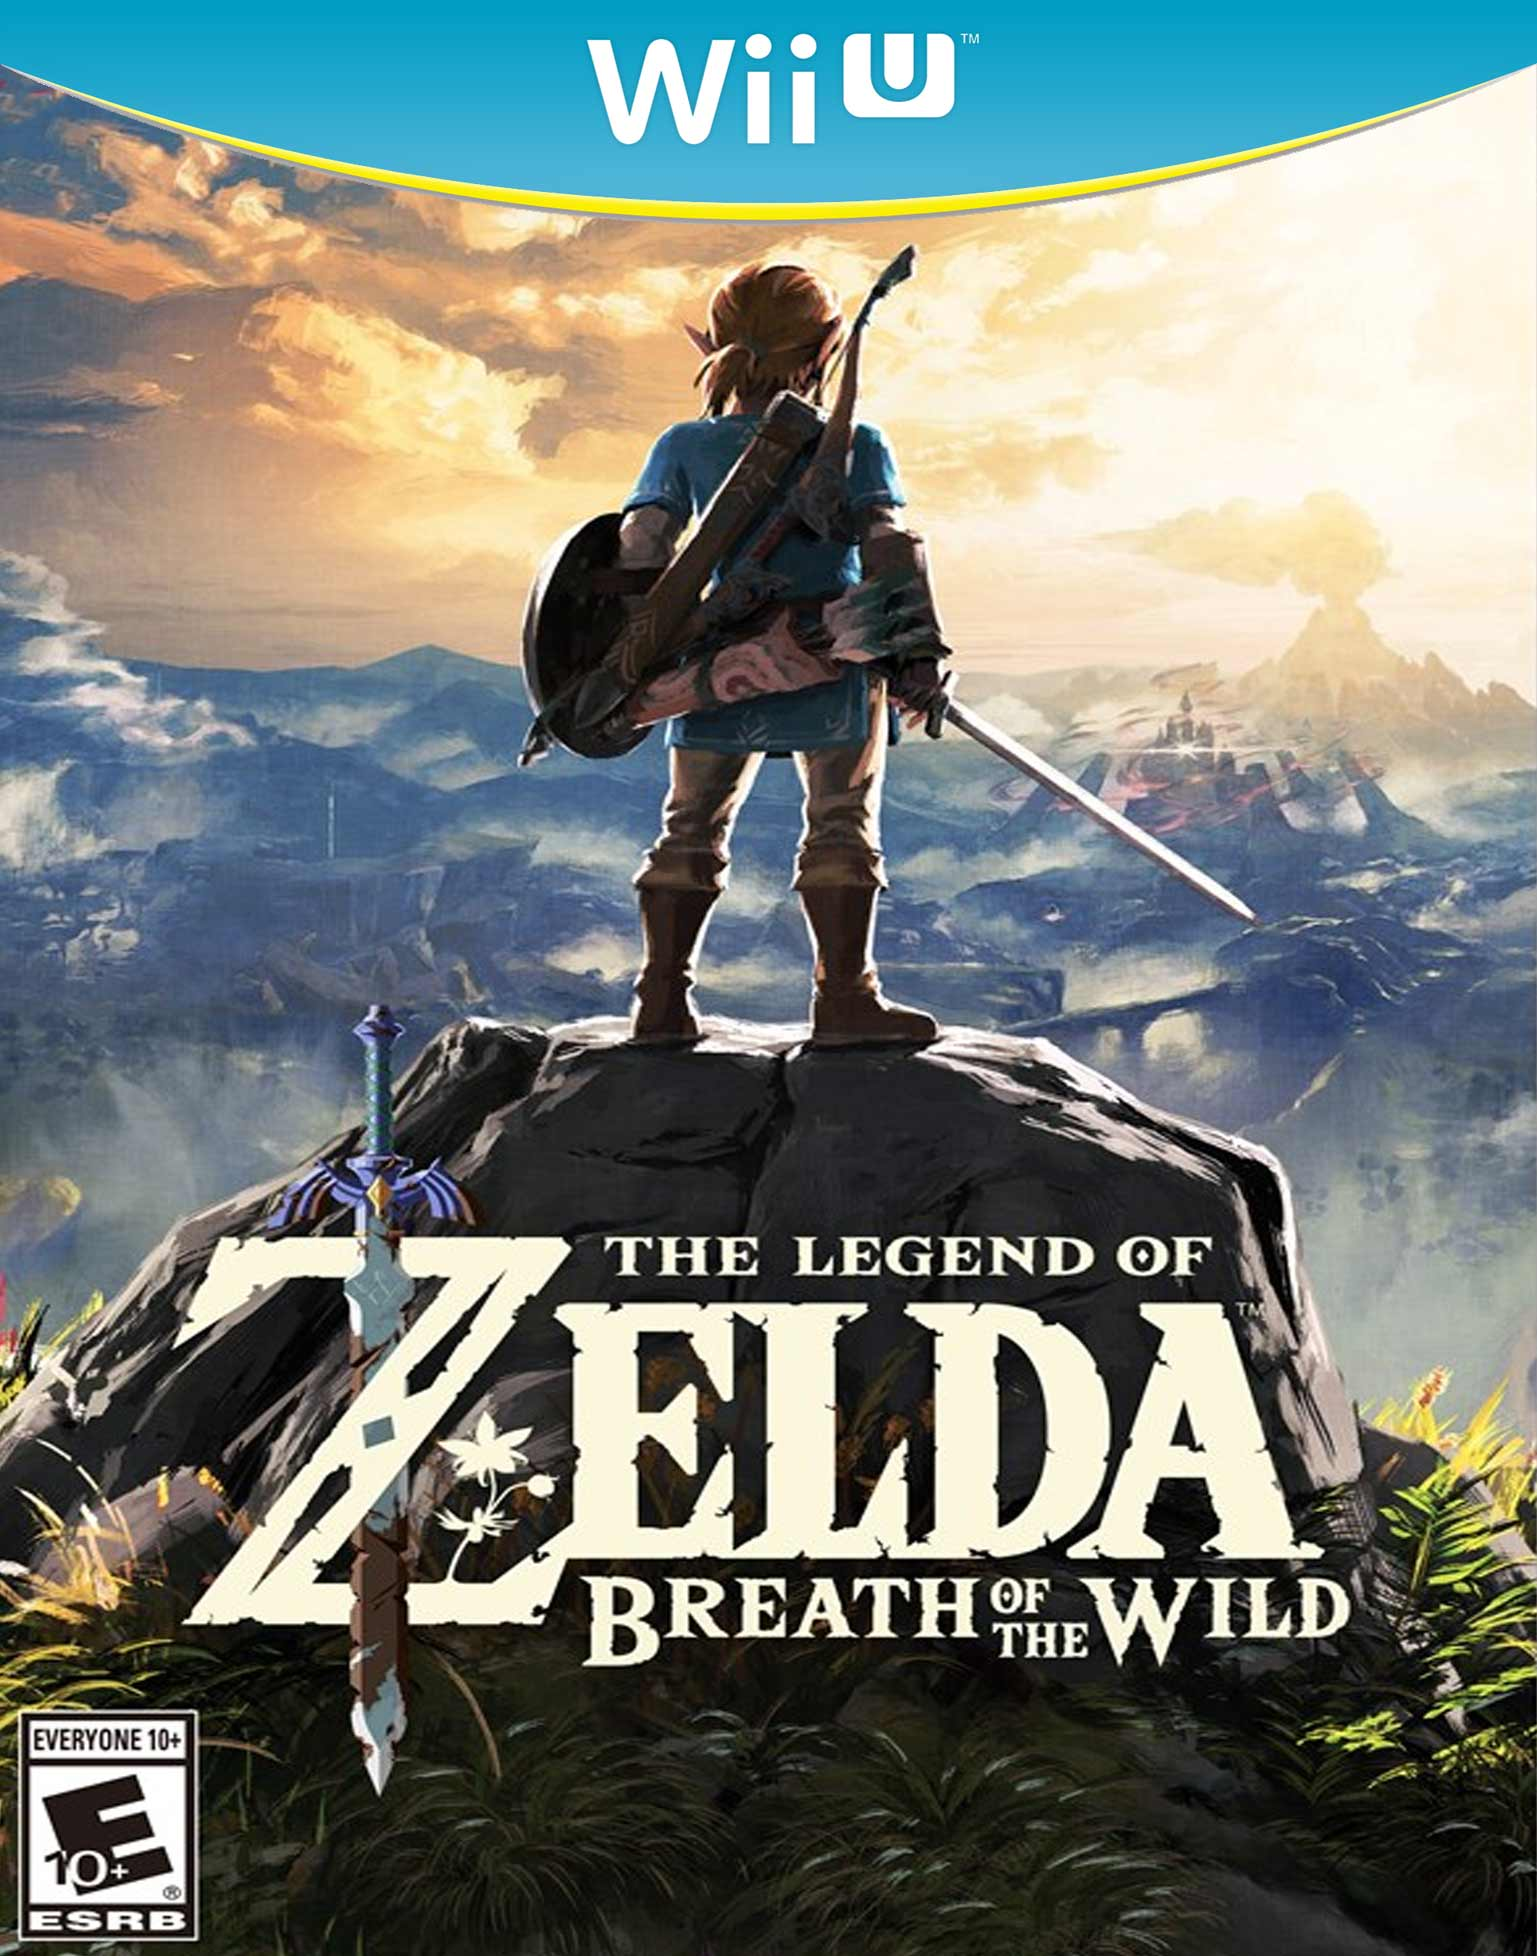 The Legend of Zelda: Breath of the Wild WiiU Box Art